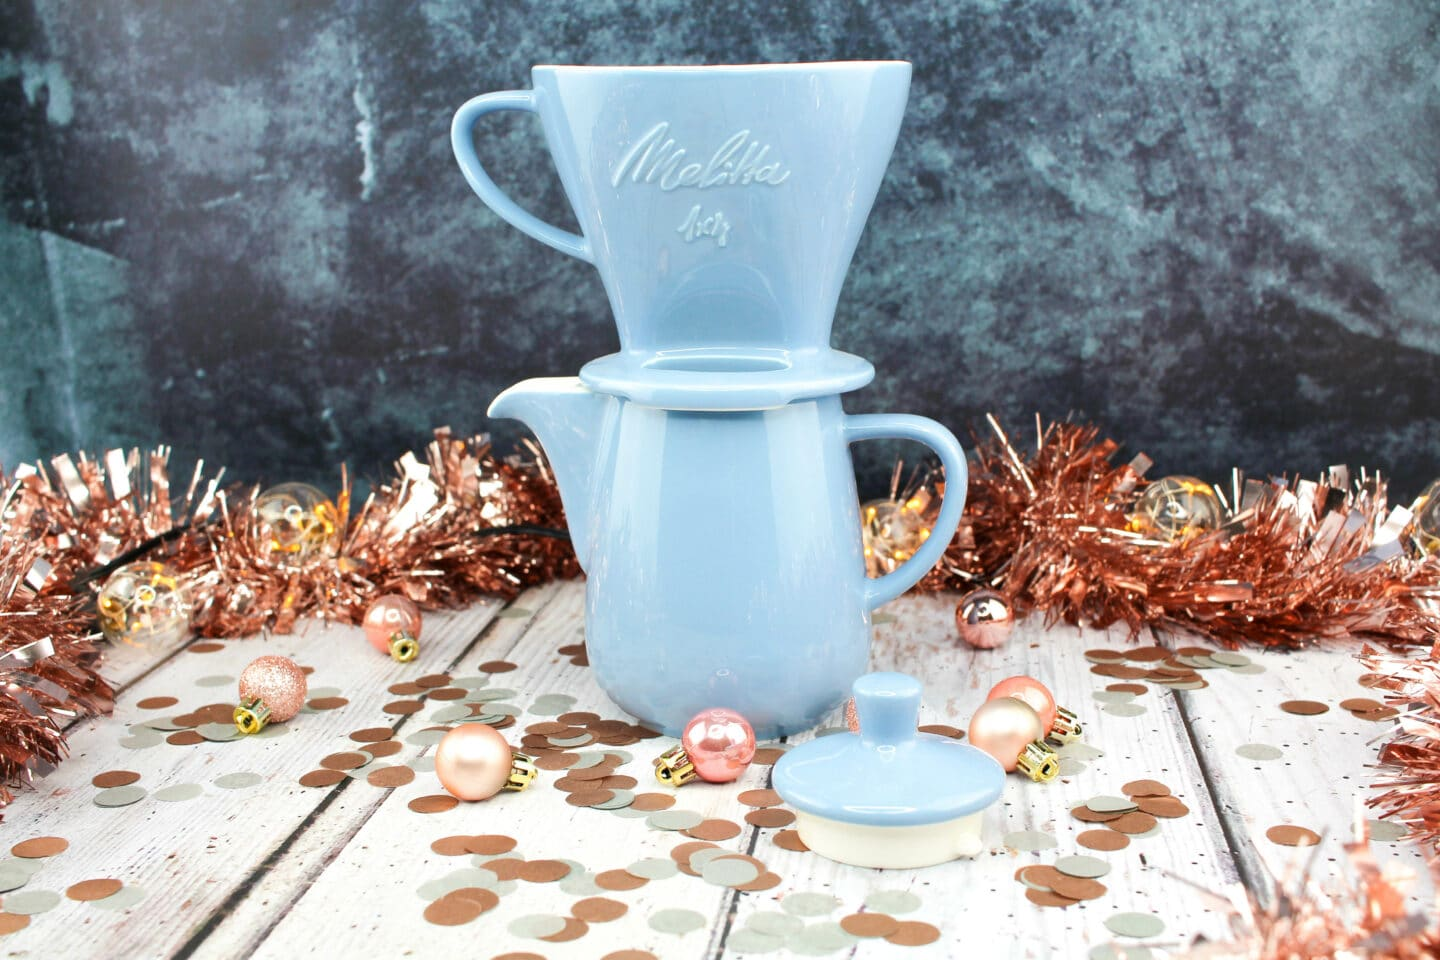 Melitta Porcelain Pour-Over Set RRP £39.99